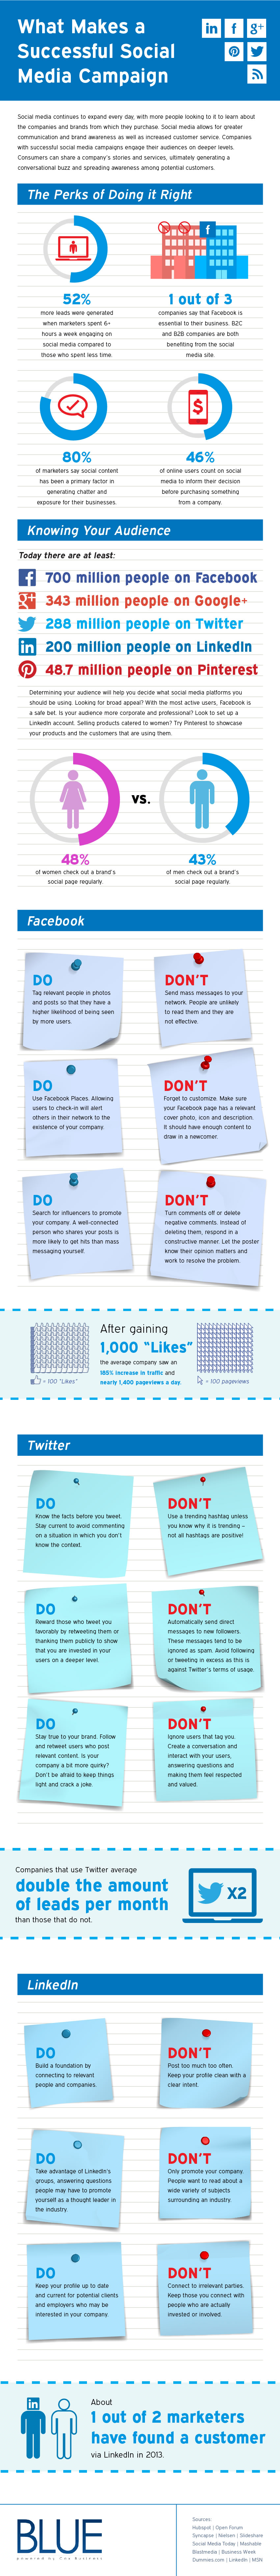 Tips-For-Successful-A-Social-Media-Campaign-On-Facebook-Twitter-and-LinkedIn-Infographic